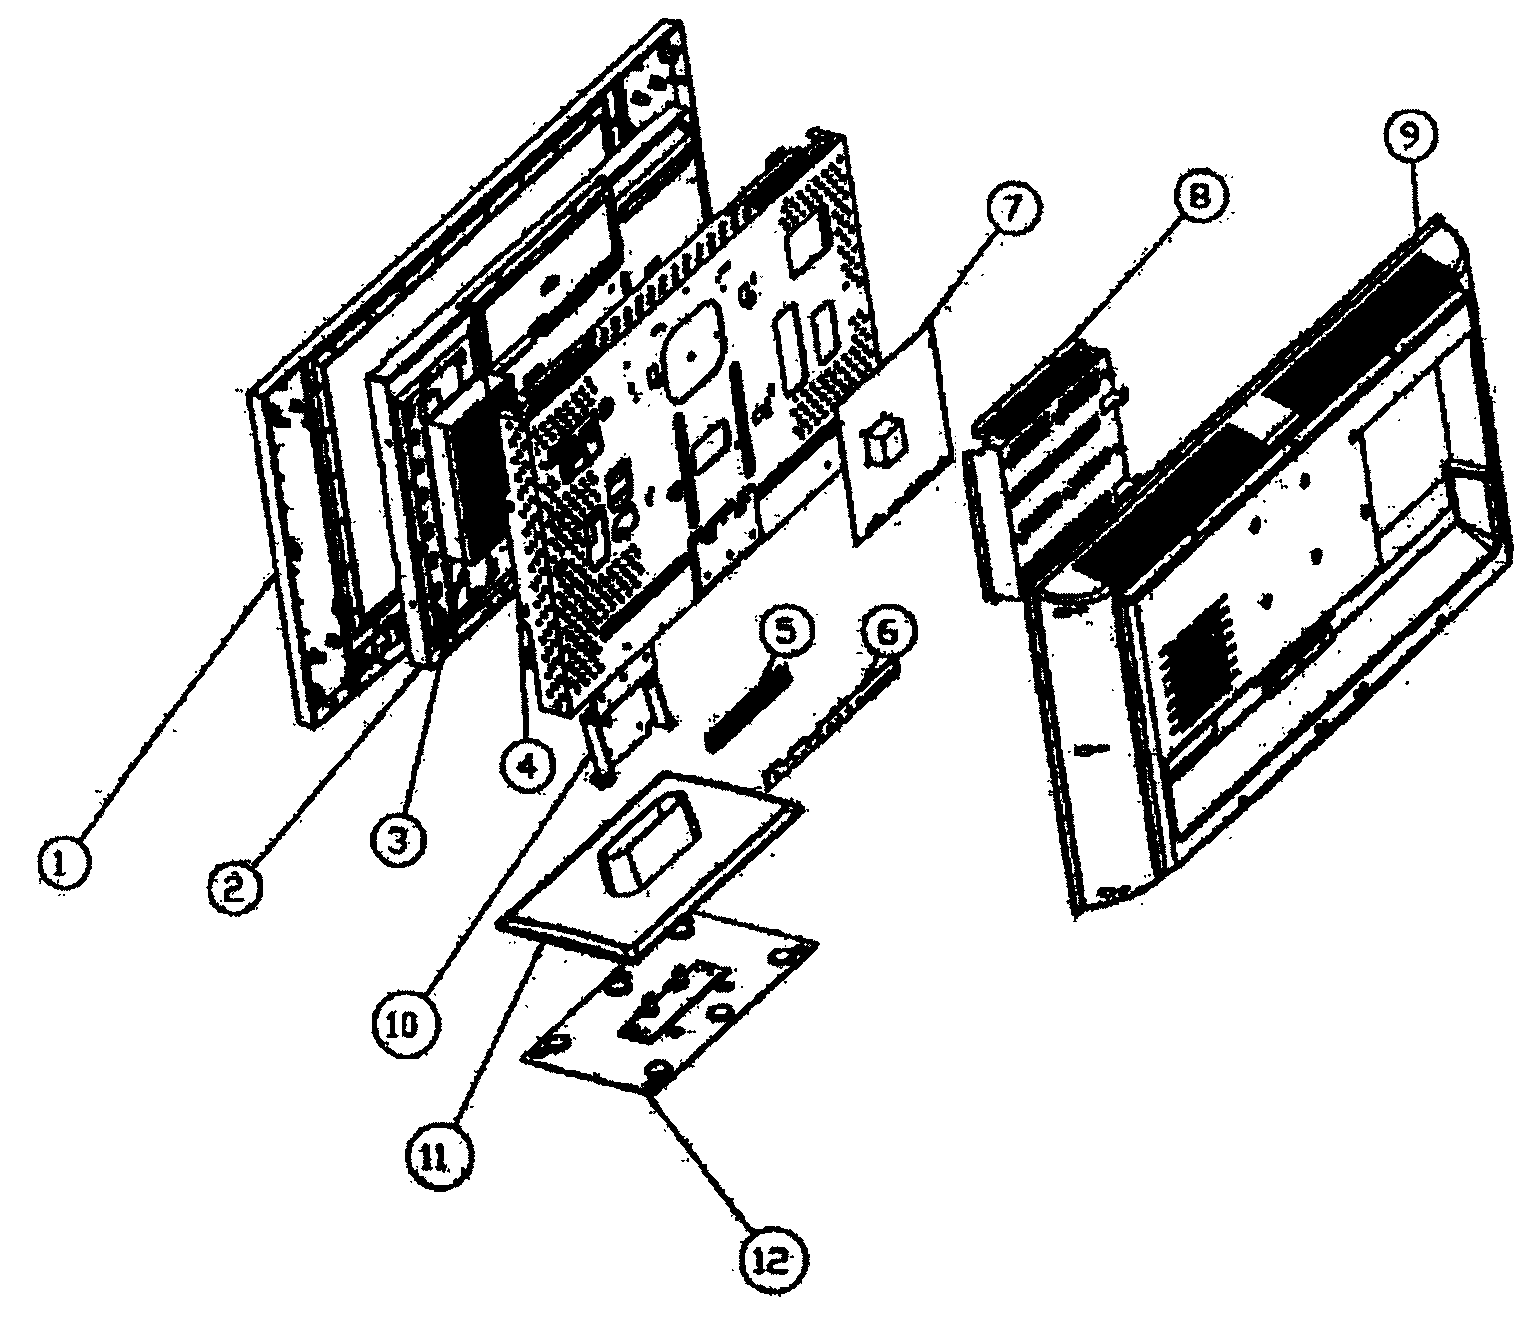 Olevia 226-S12 cabinet parts diagram